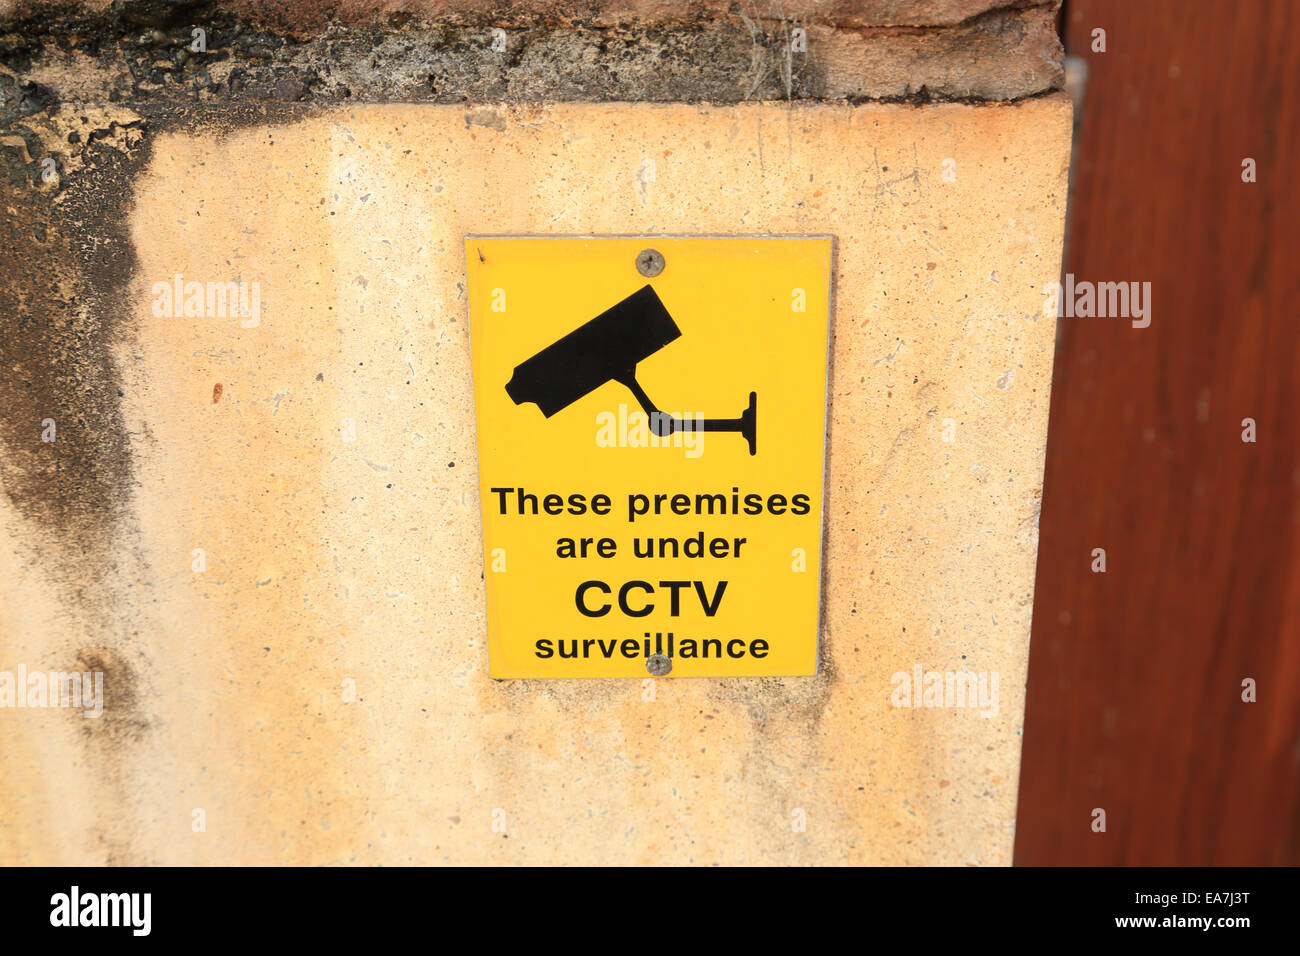 Sign warning that premises are under CCTV surveillance - Stock Image